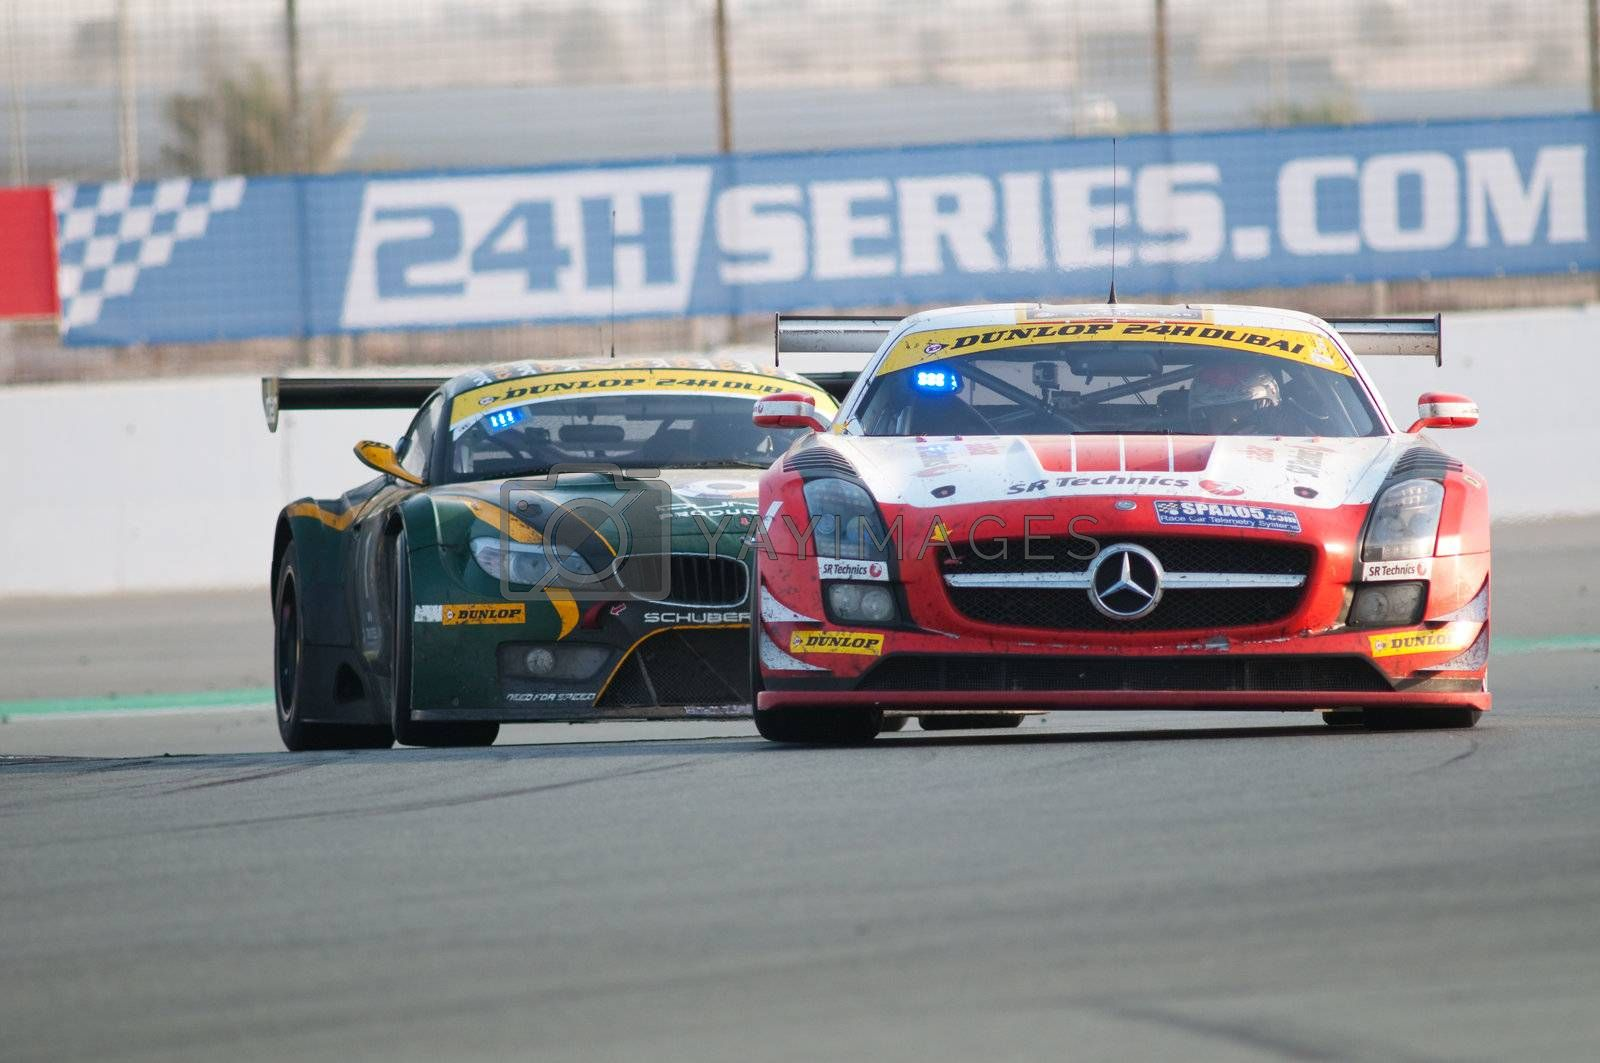 DUBAI - JANUARY 14: Race winner, a Mercedes SLS AMG GT3 in front of last year's winner, a BMW Z4 GT3, during the morning hours of the 2012 Dunlop 24 Hour Race at Dubai Autodrome on January 14, 2012.